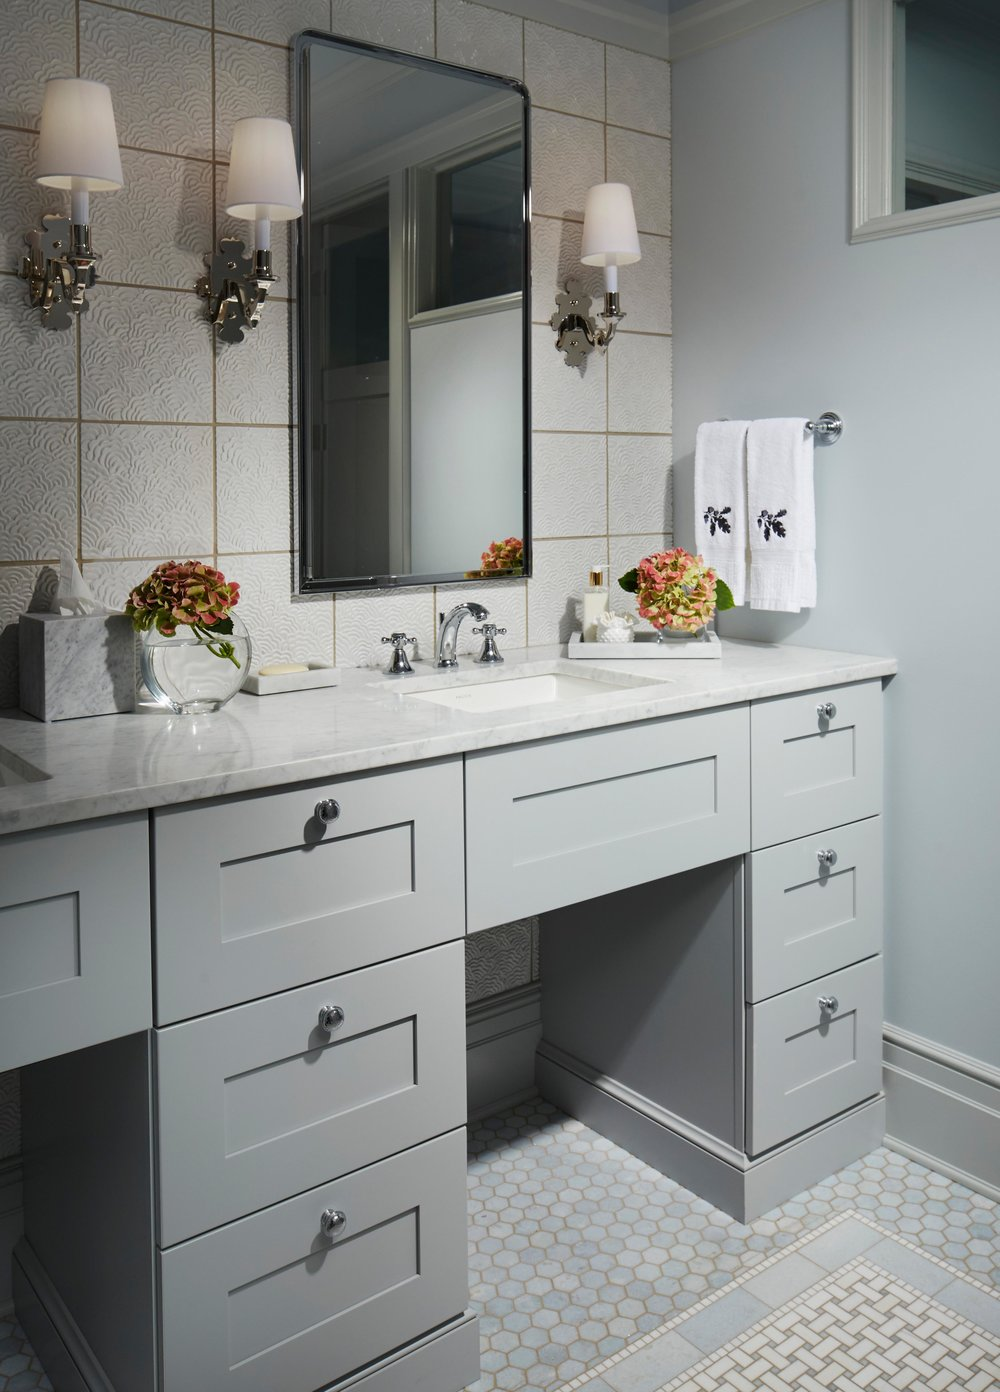 Classic bathroom with light gray vanity. Come see more interior design inspiration from Elizabeth Drake. Photo by Werner Straube. #interiordesign #classicdesign #traditionaldecor #housetour #elizabethdrake